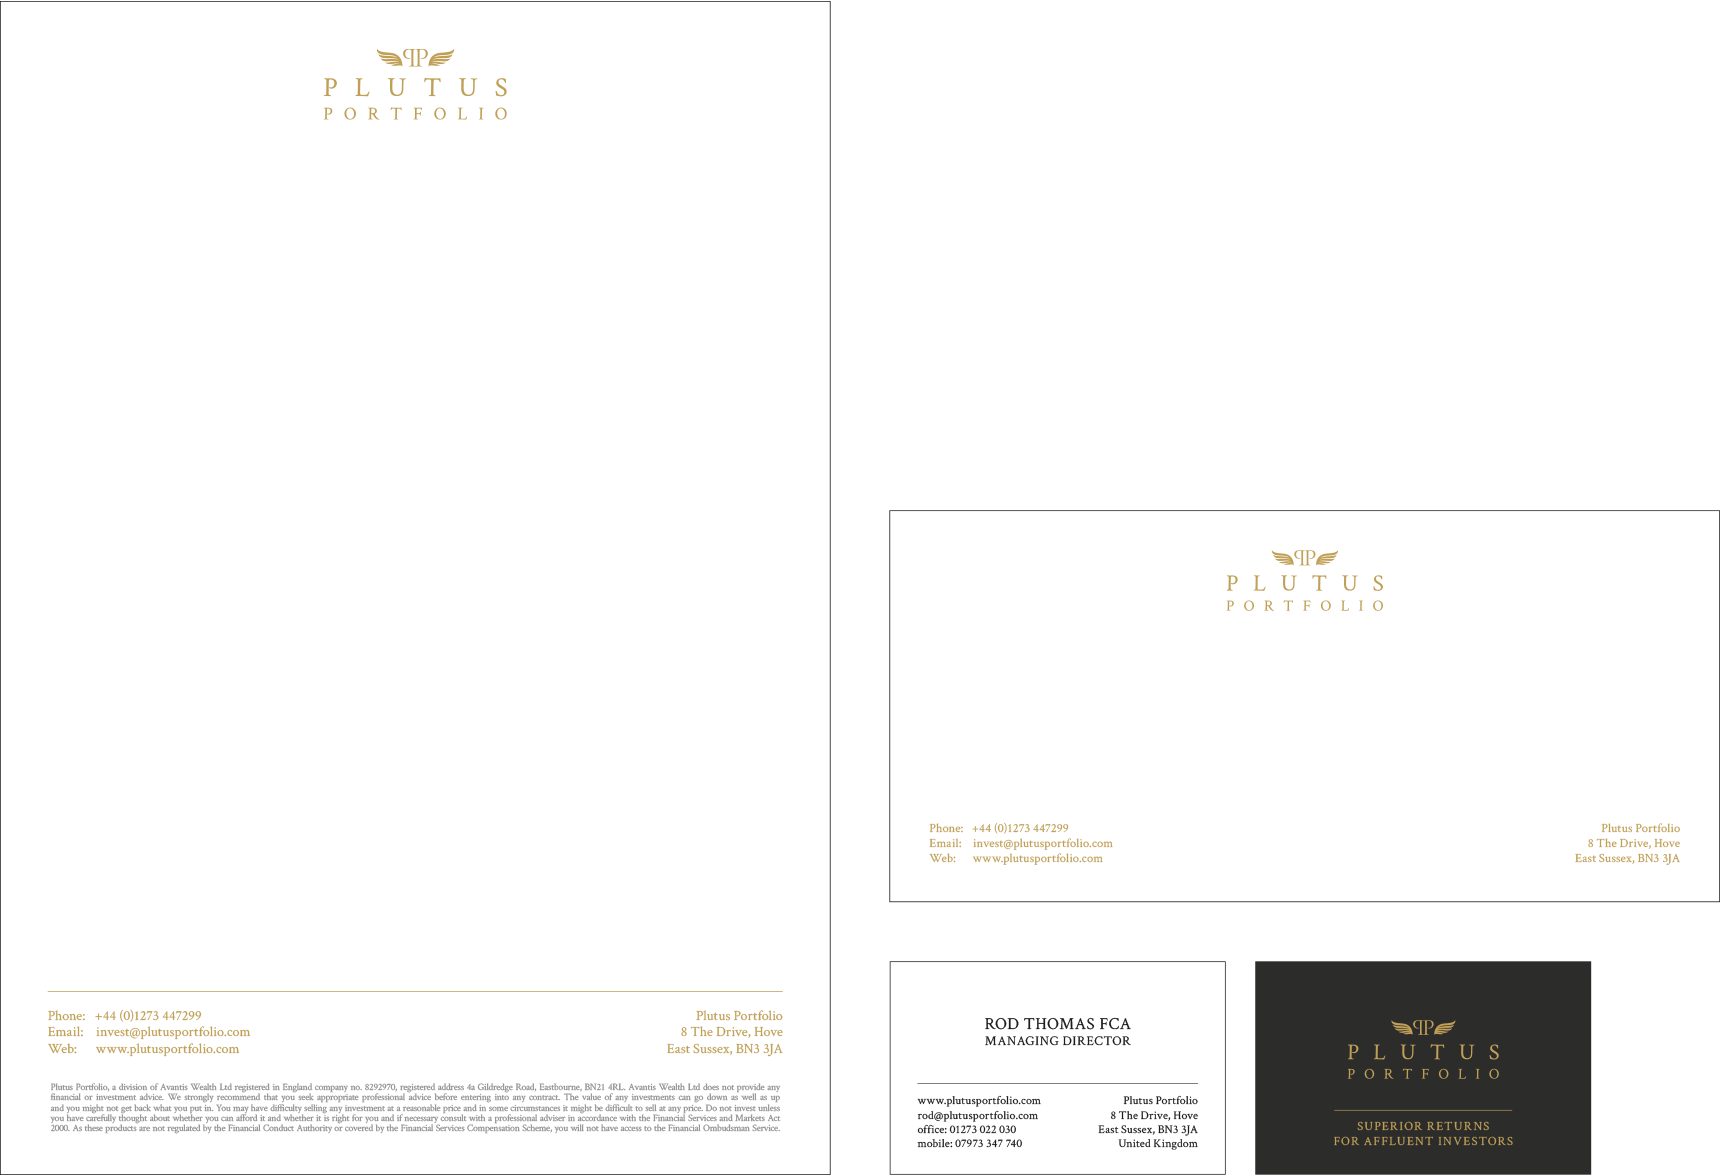 Letterhead, compliment slip and business card design